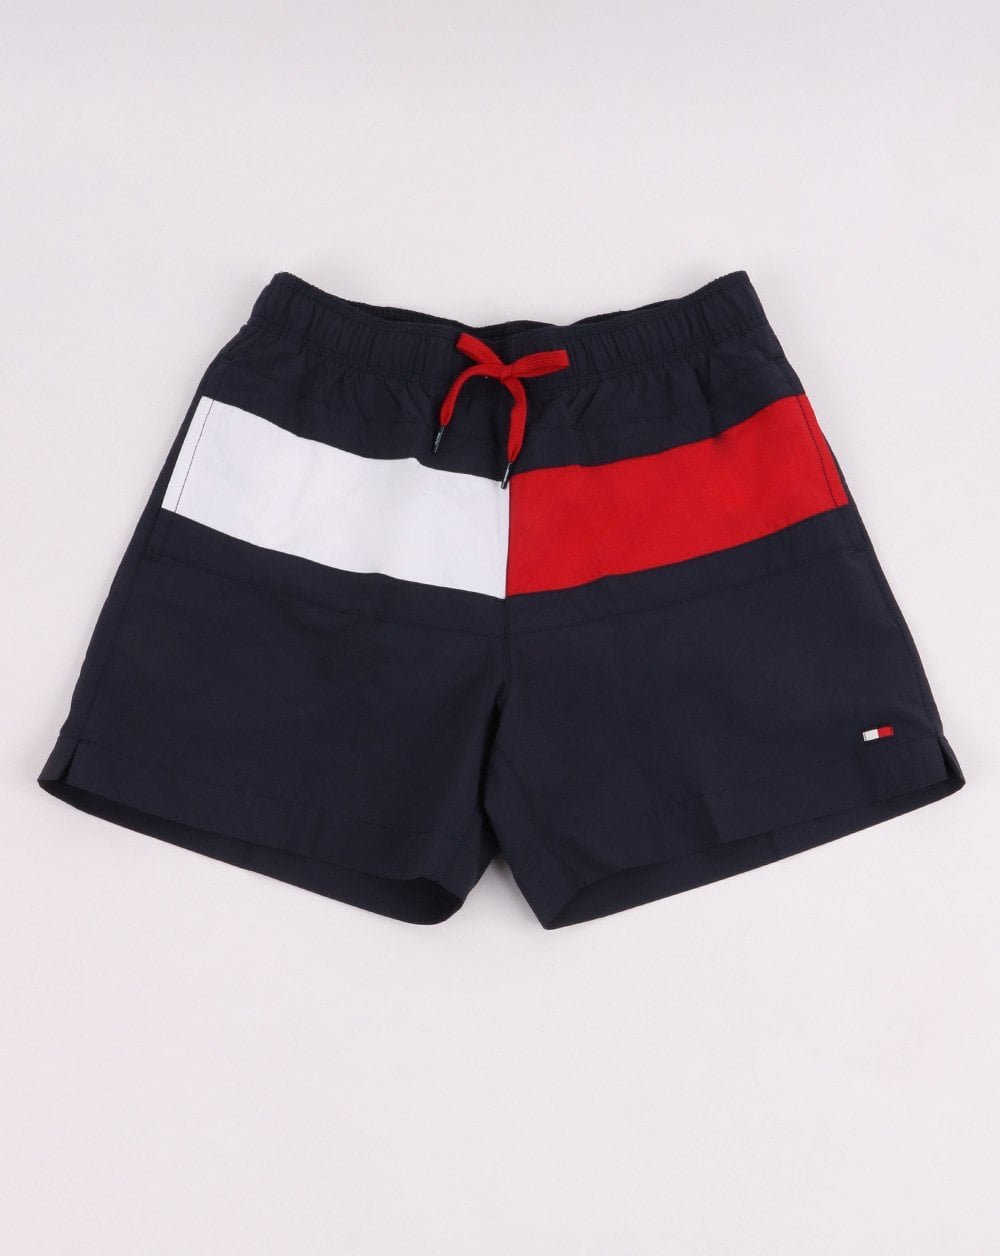 b233d41c6b Tommy Hilfiger Swim Shorts in Navy?red/White | 80s Casual Classics